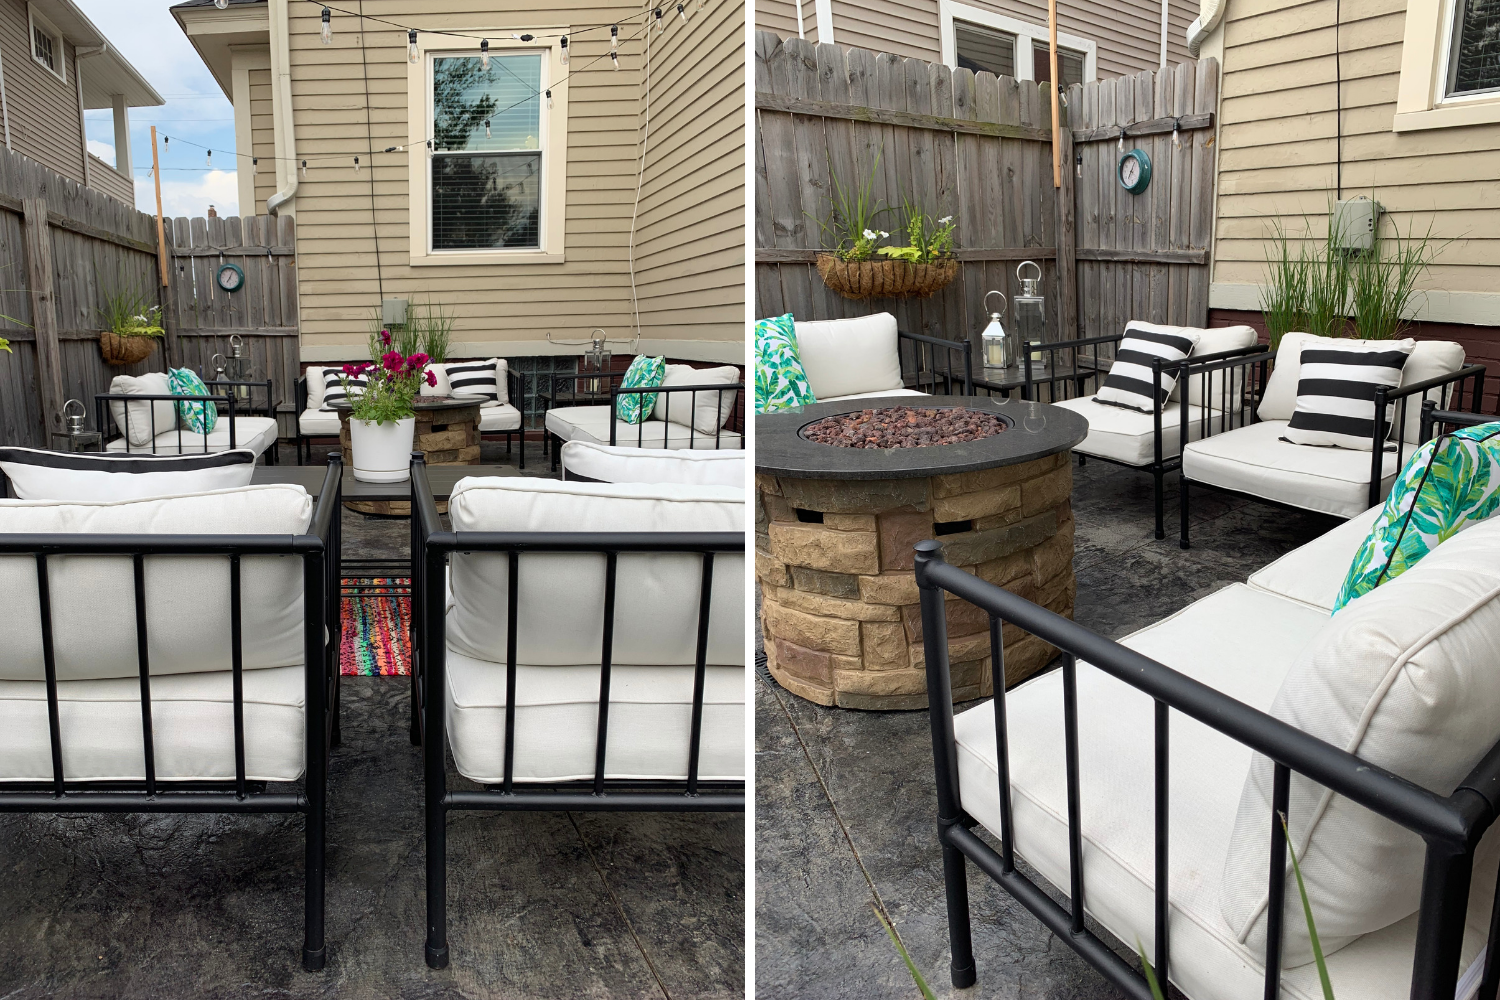 House Tour - Patio (1)